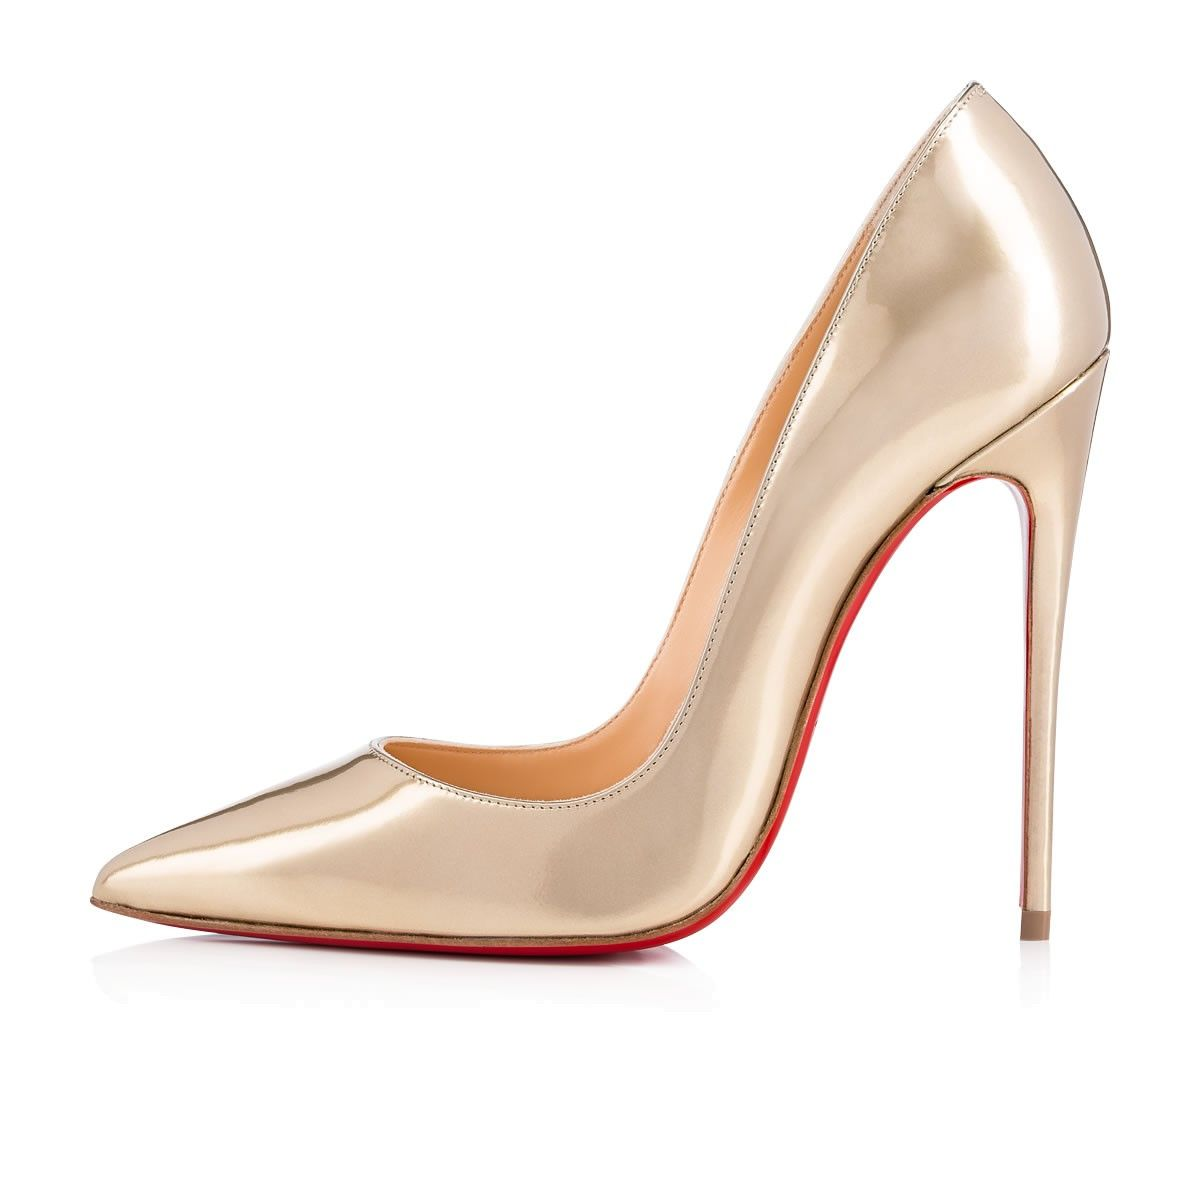 buy online 74a09 72f5c Shoes - So Kate - Christian Louboutin | 100 Style Essentials ...